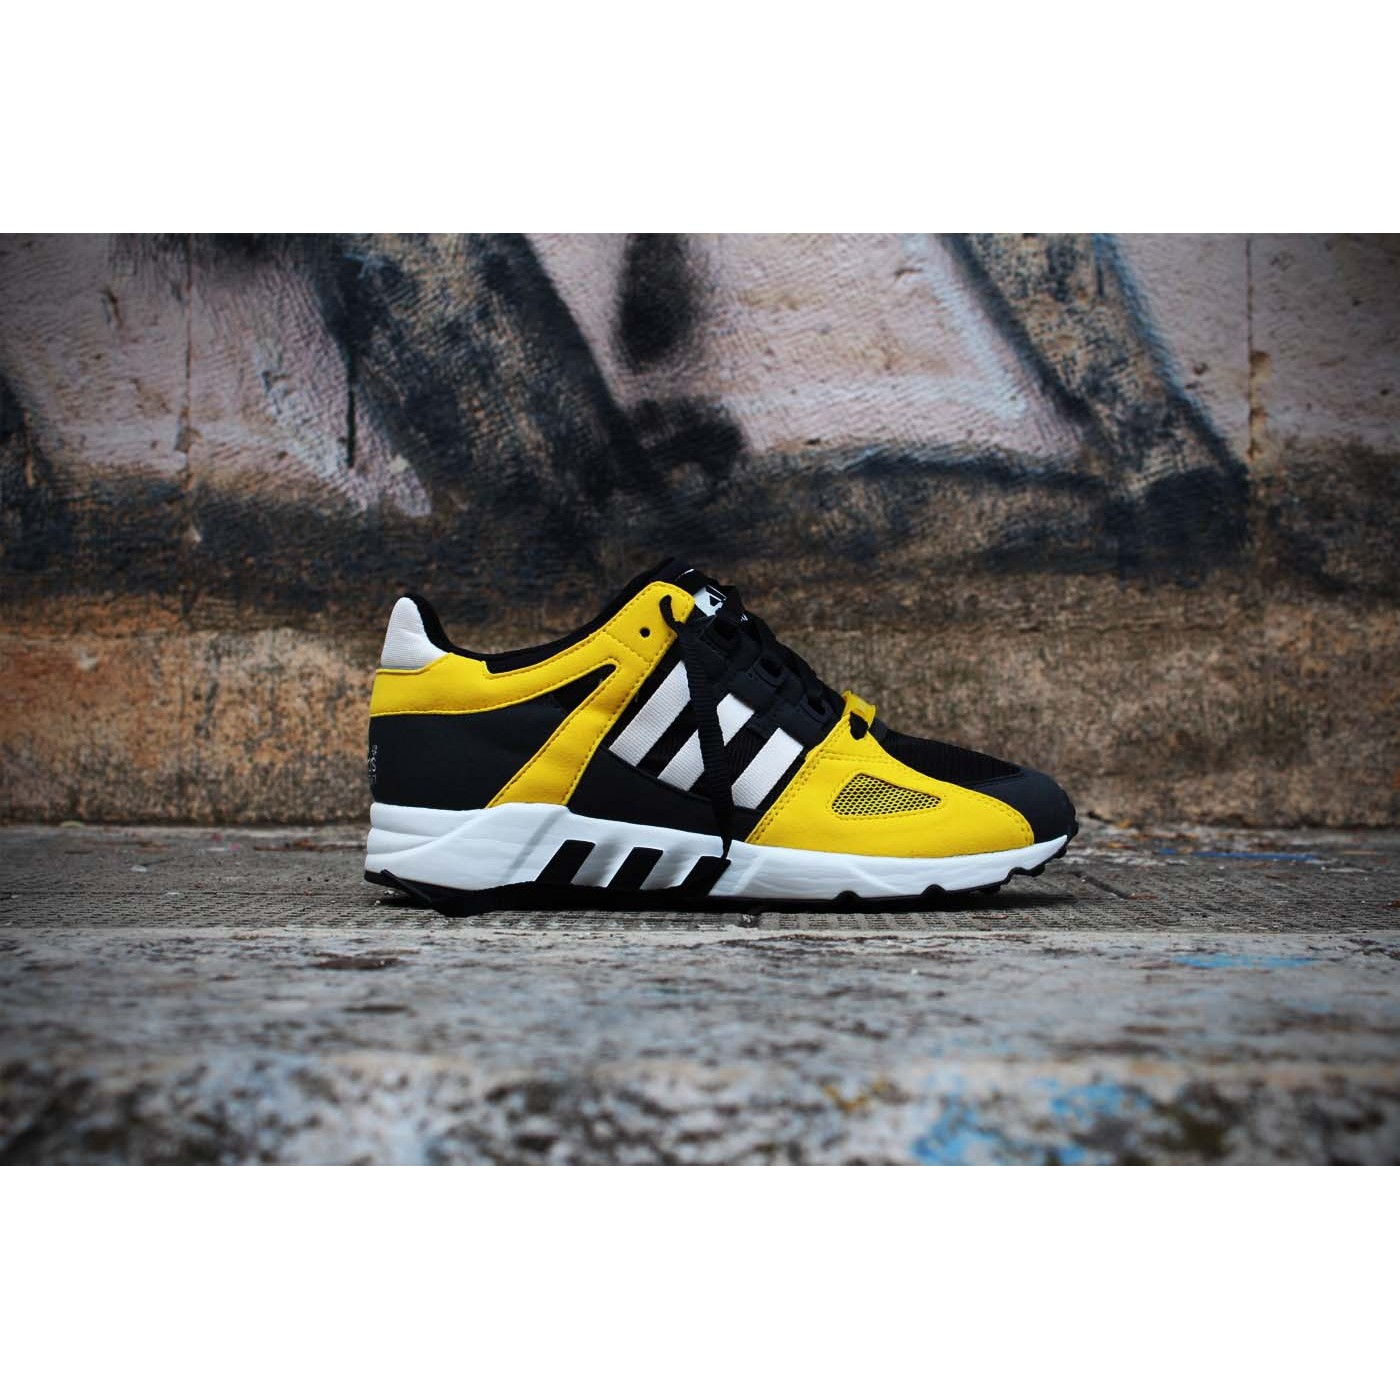 adidas eqt support rf bb1324 camo/core black/grey/off white